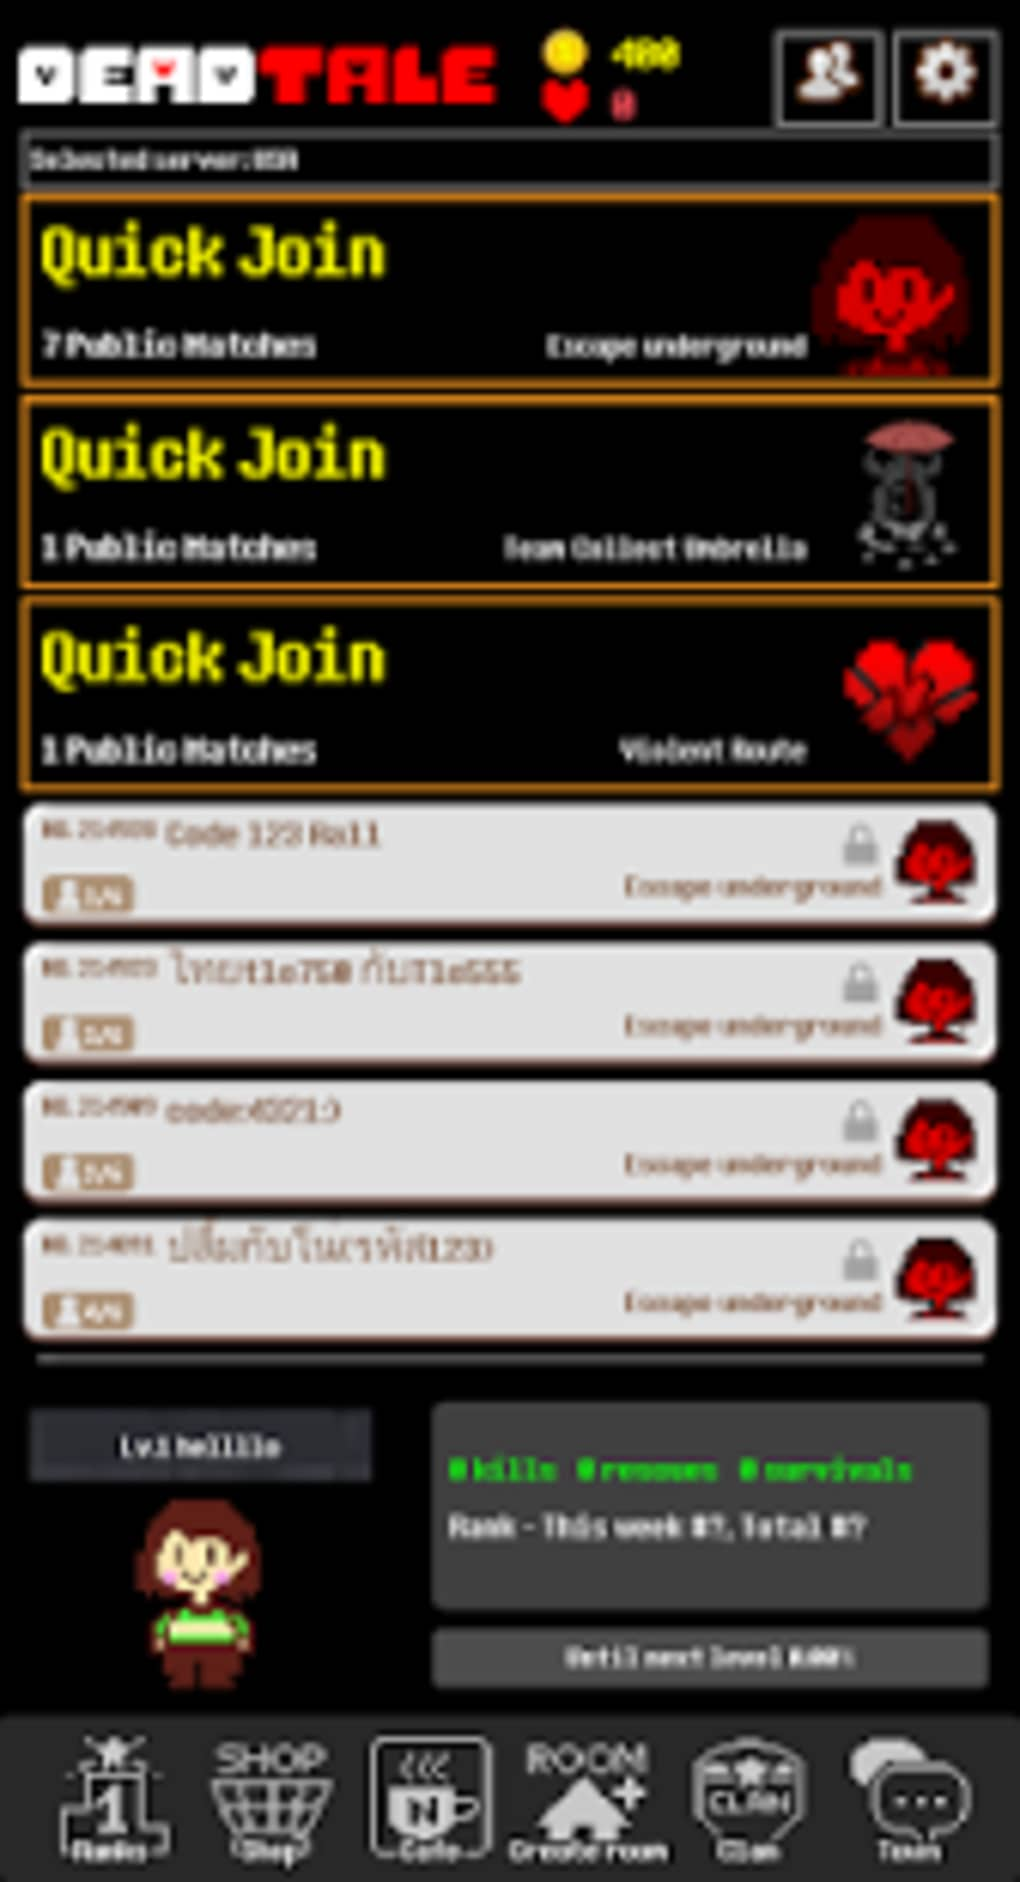 deadtale online for undertale for android download